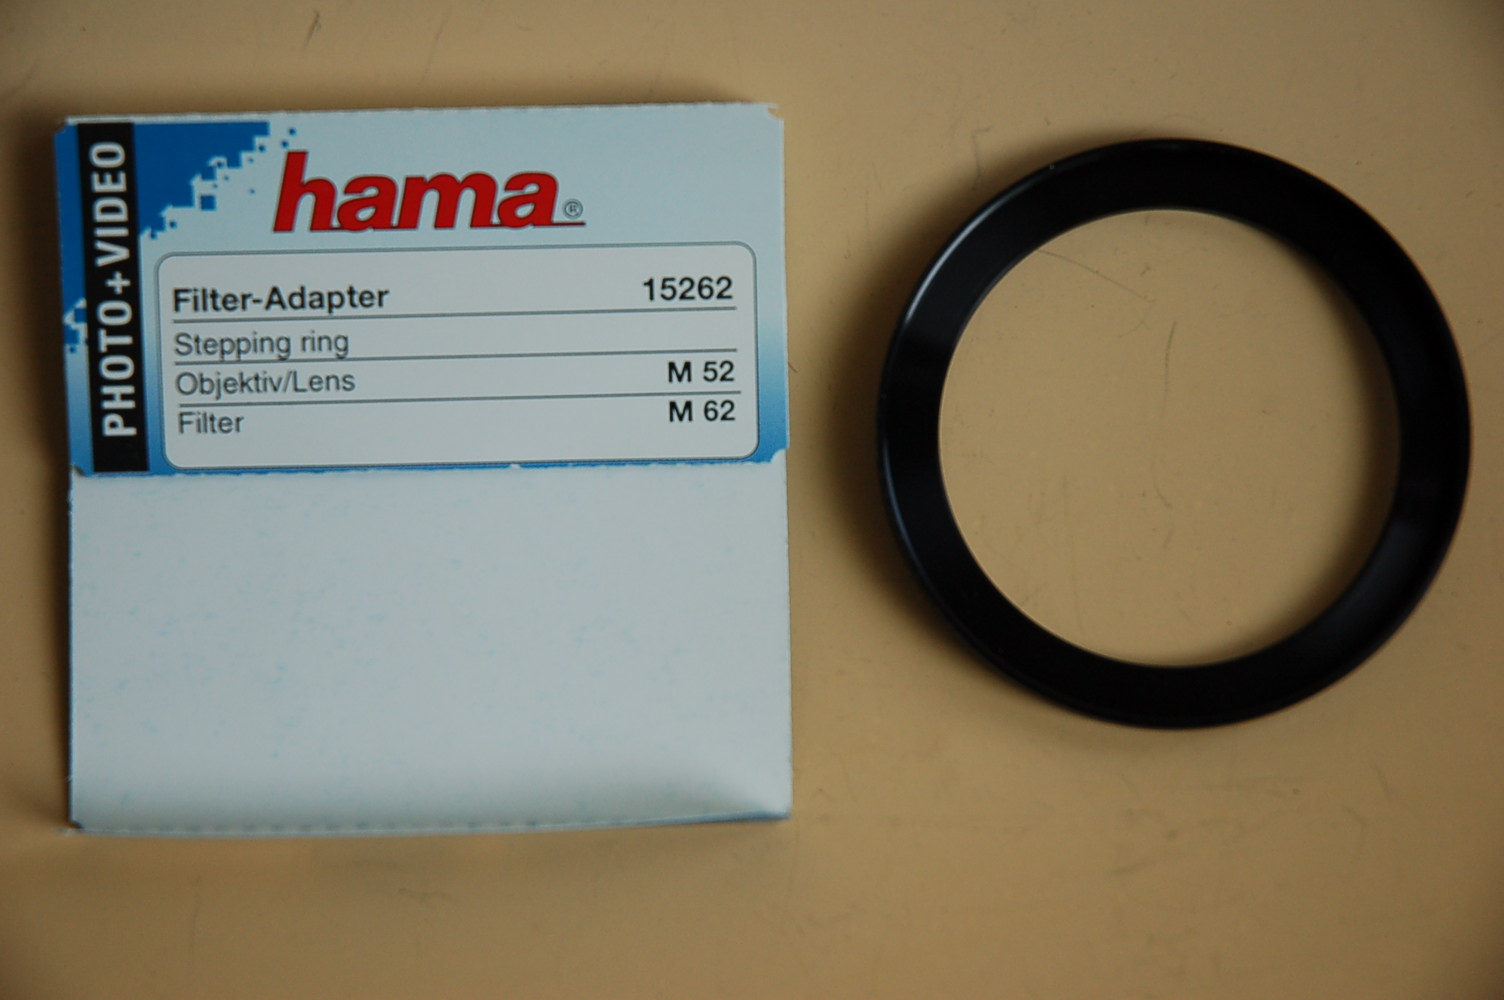 Hama Filter Adapter 52<62mm 15262